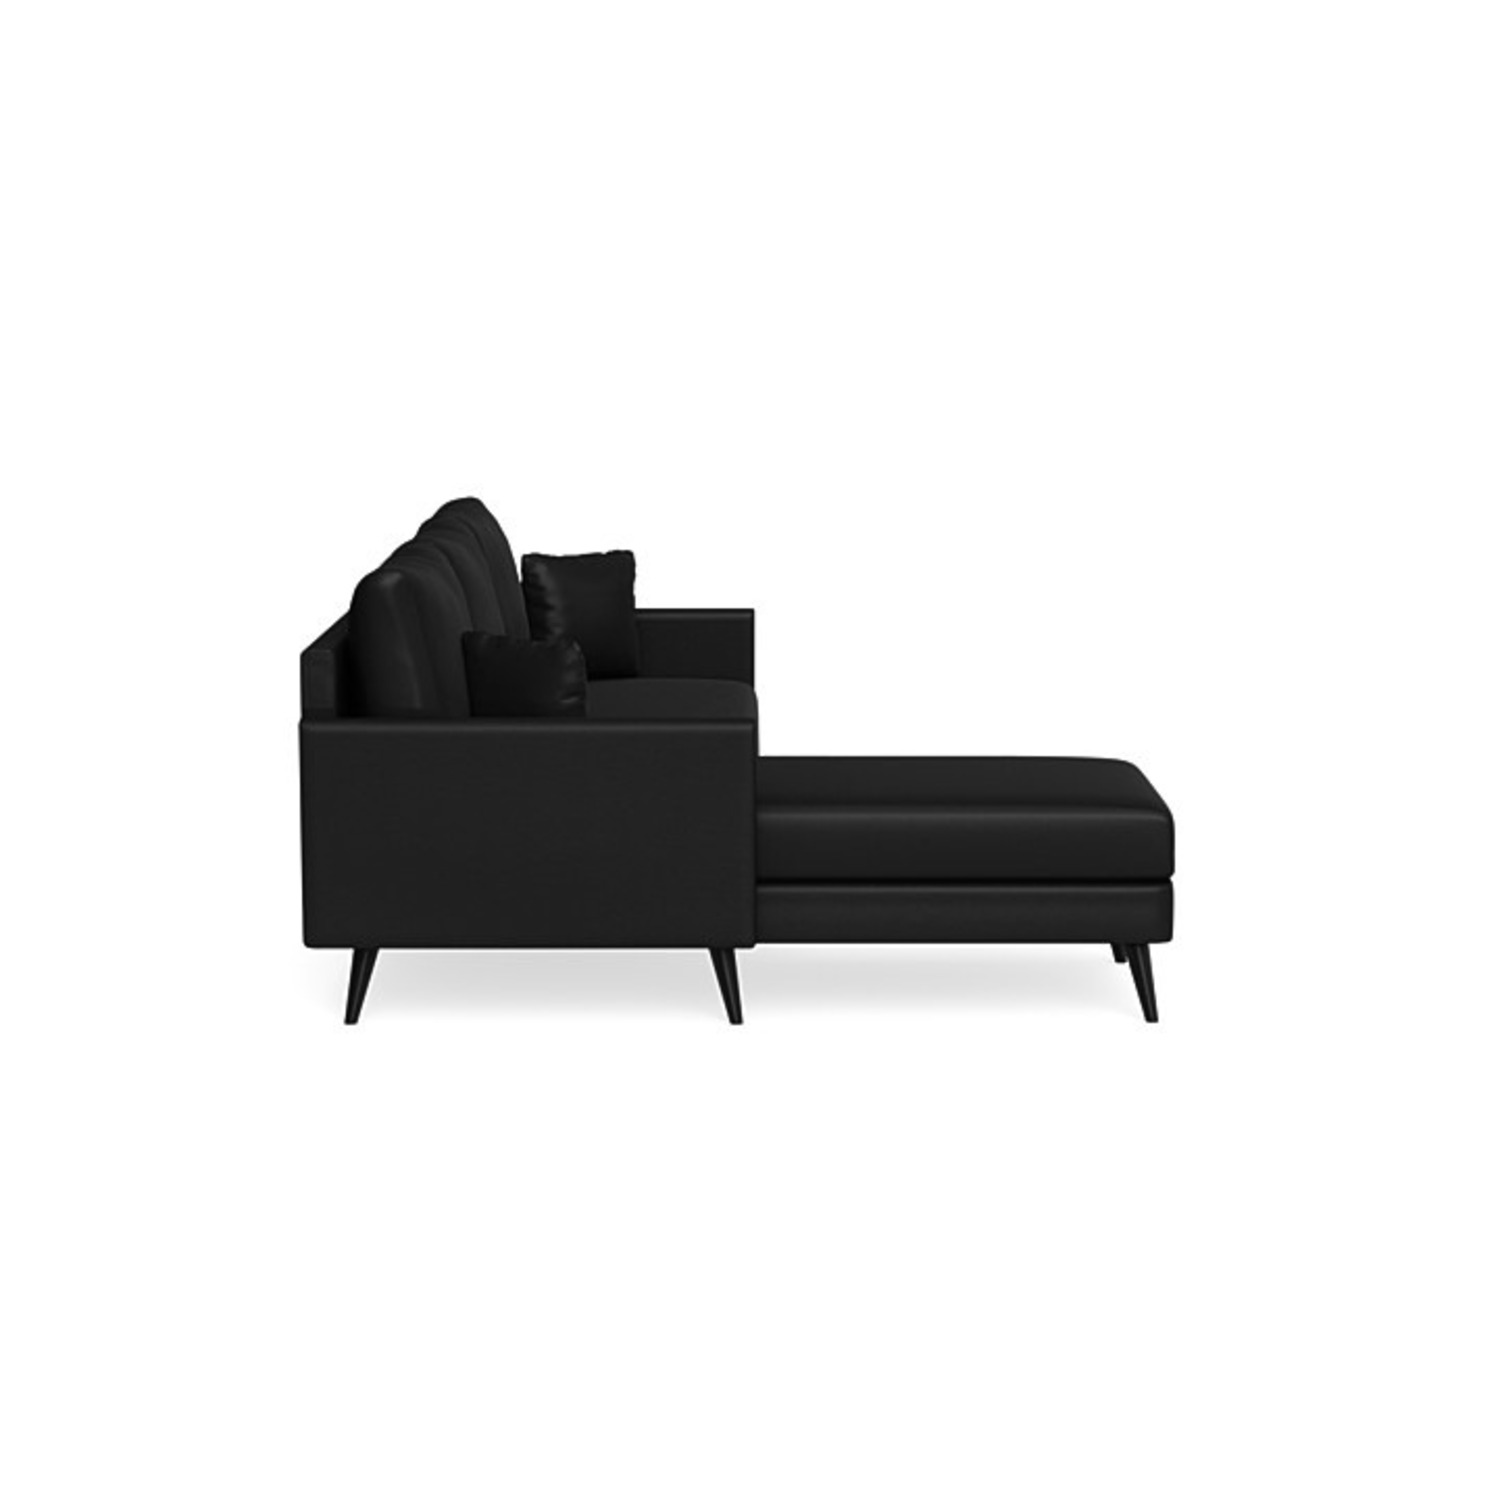 Inside Weather Custom Issa Sectional in Onyx - image-2